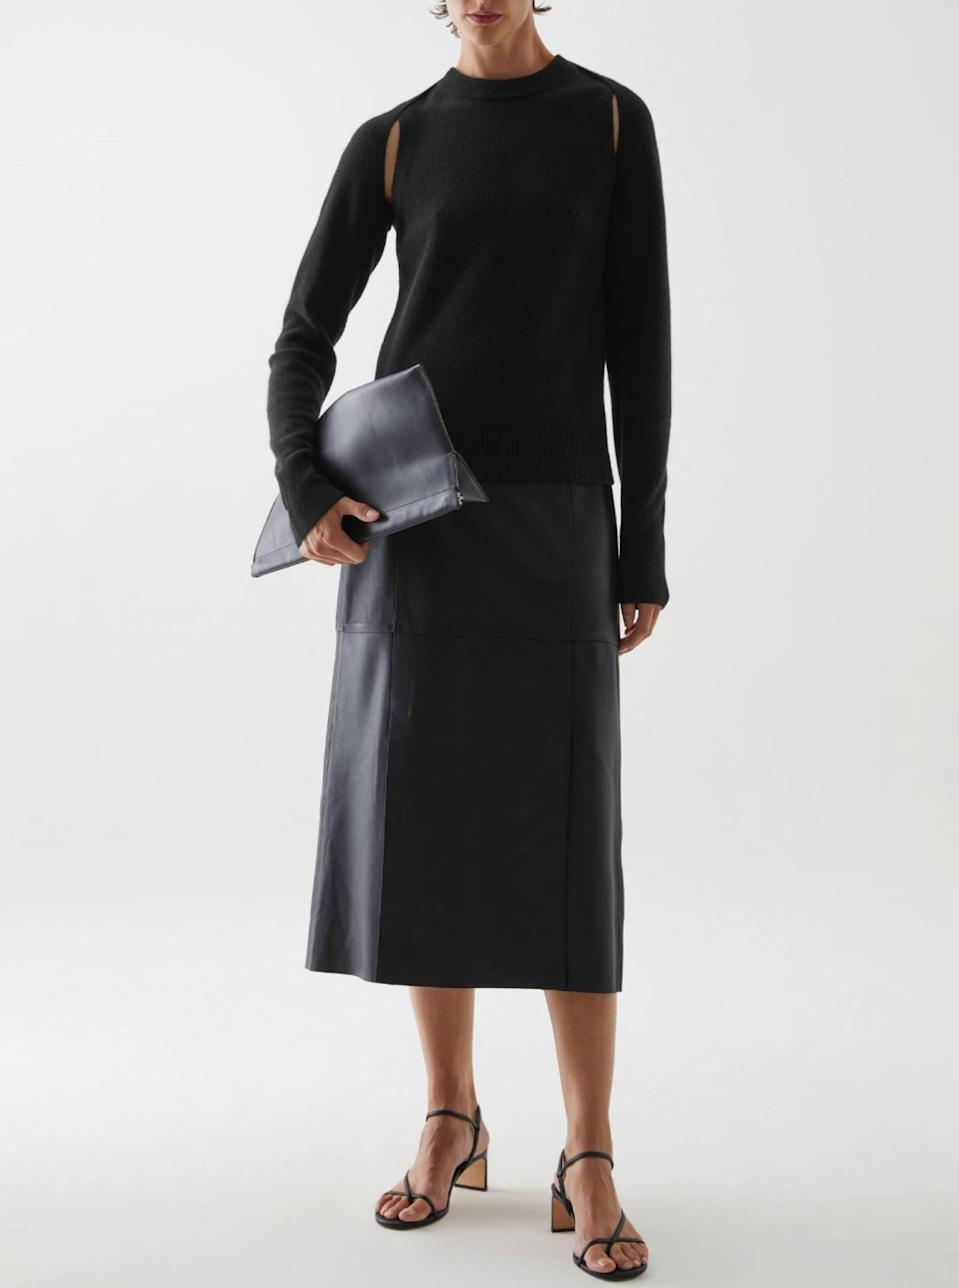 """Offset a delicate cashmere shrug by pairing it with a leather skirt for an all-black look that's anything but boring. $150, Cos. <a href=""""https://www.cosstores.com/en_usd/women/accessories/product.cashmere-cropped-shrug-black.0941074001.html"""" rel=""""nofollow noopener"""" target=""""_blank"""" data-ylk=""""slk:Get it now!"""" class=""""link rapid-noclick-resp"""">Get it now!</a>"""